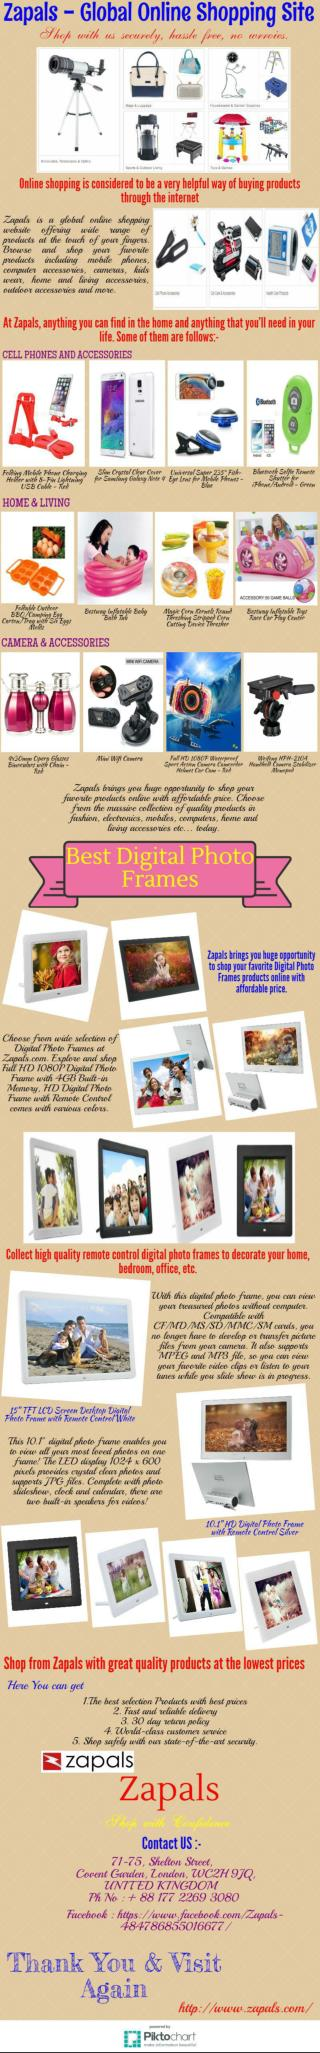 Buy Best Digital Photo Frames Online